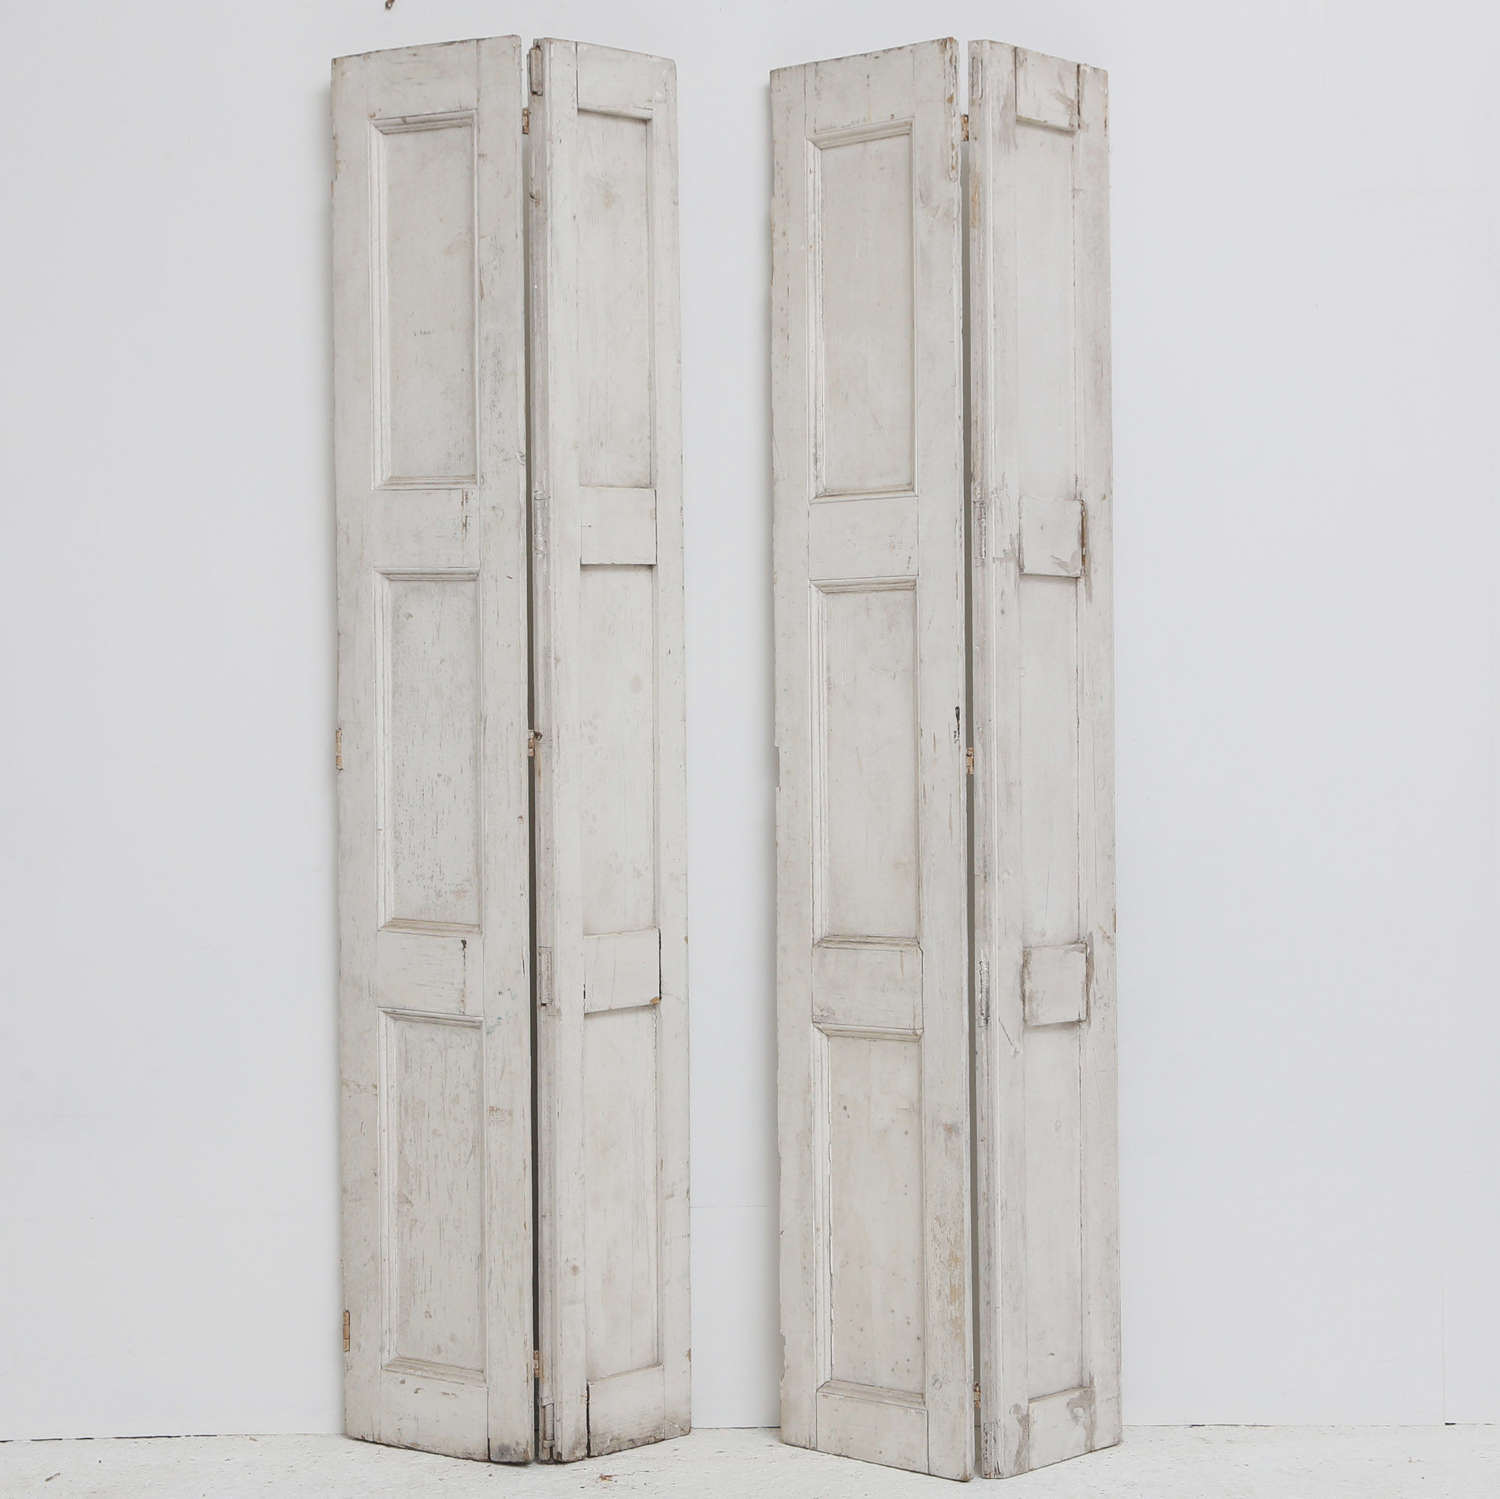 Pair of 19th century Painted Pine Shutters